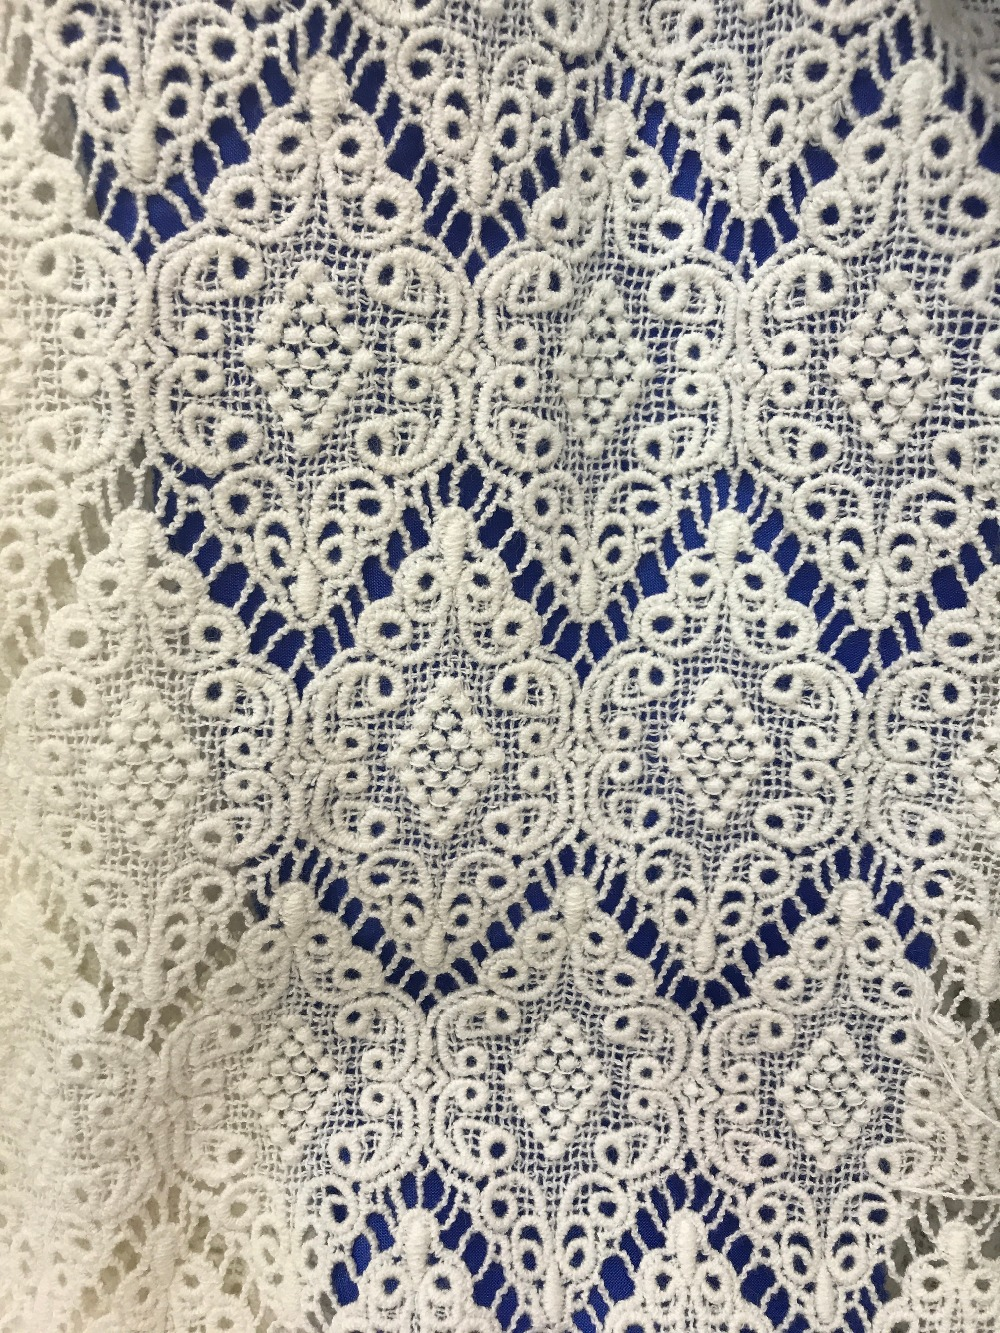 OFF white lace fabric,Exquisite retro daisy bridal crochet lace fabric ,Water soluble cotton lace fabric 5yards